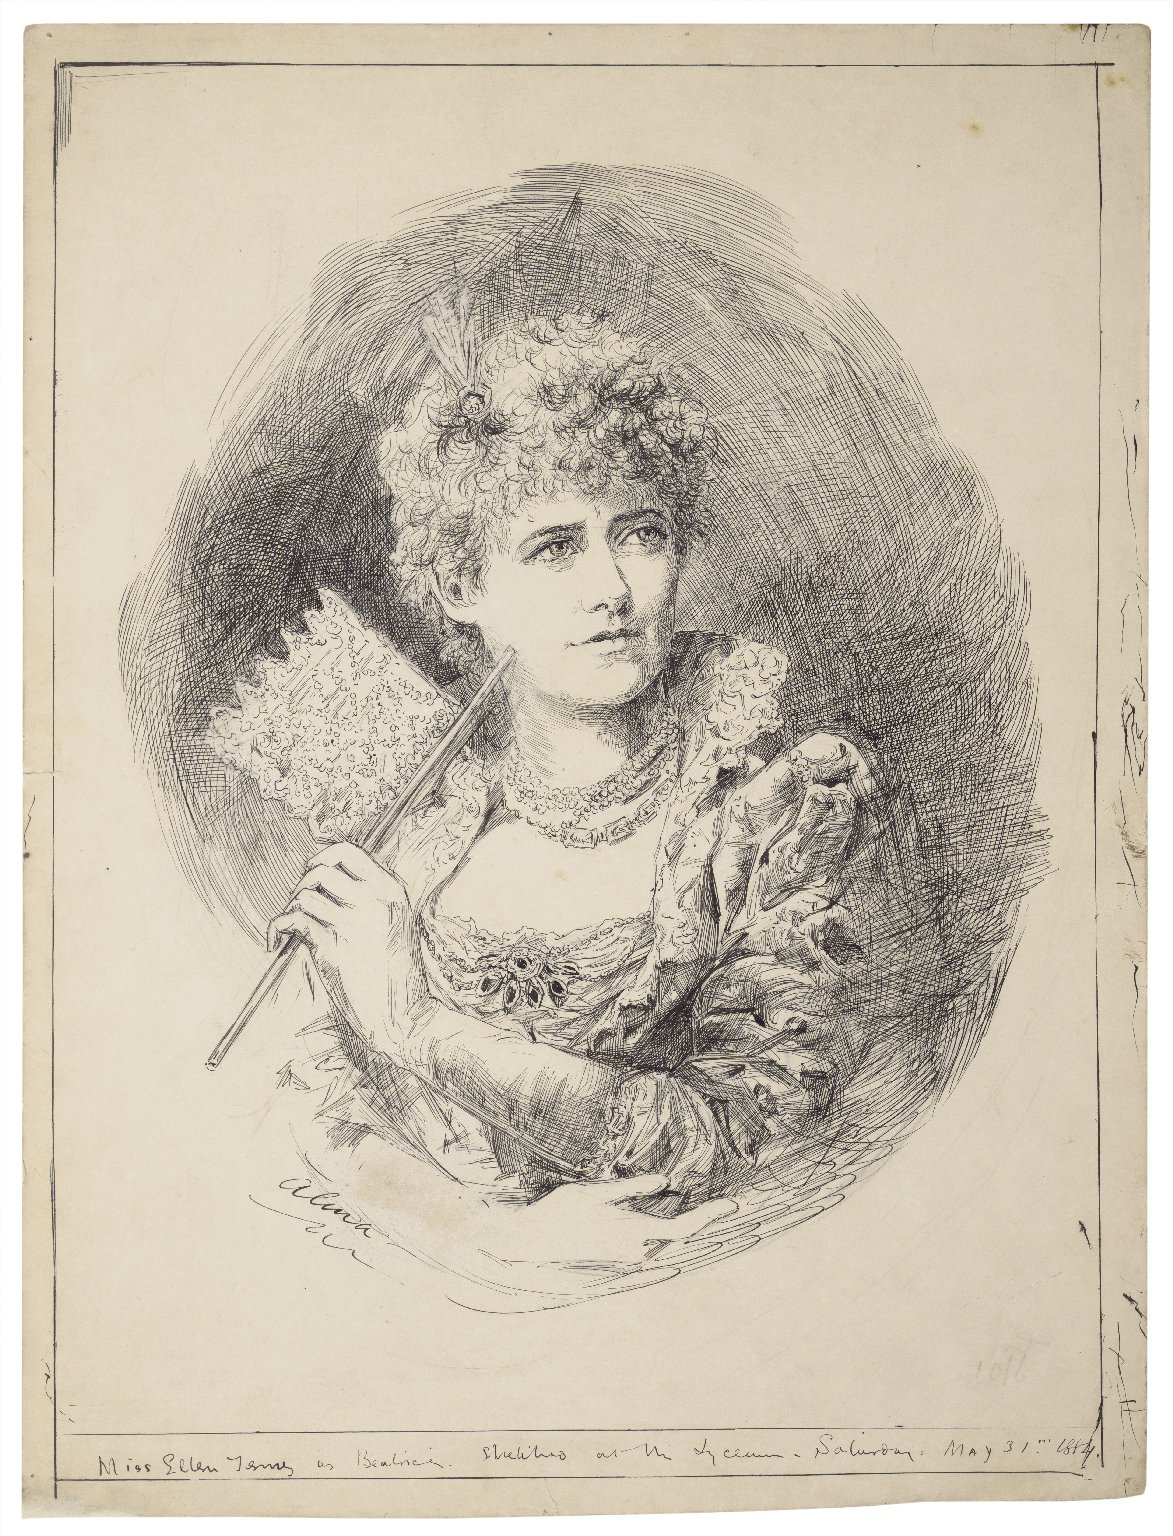 Miss Ellen Terry as Beatrice, sketched at the Lyceum, Saturday May 31, 1884 [graphic] / Alma.